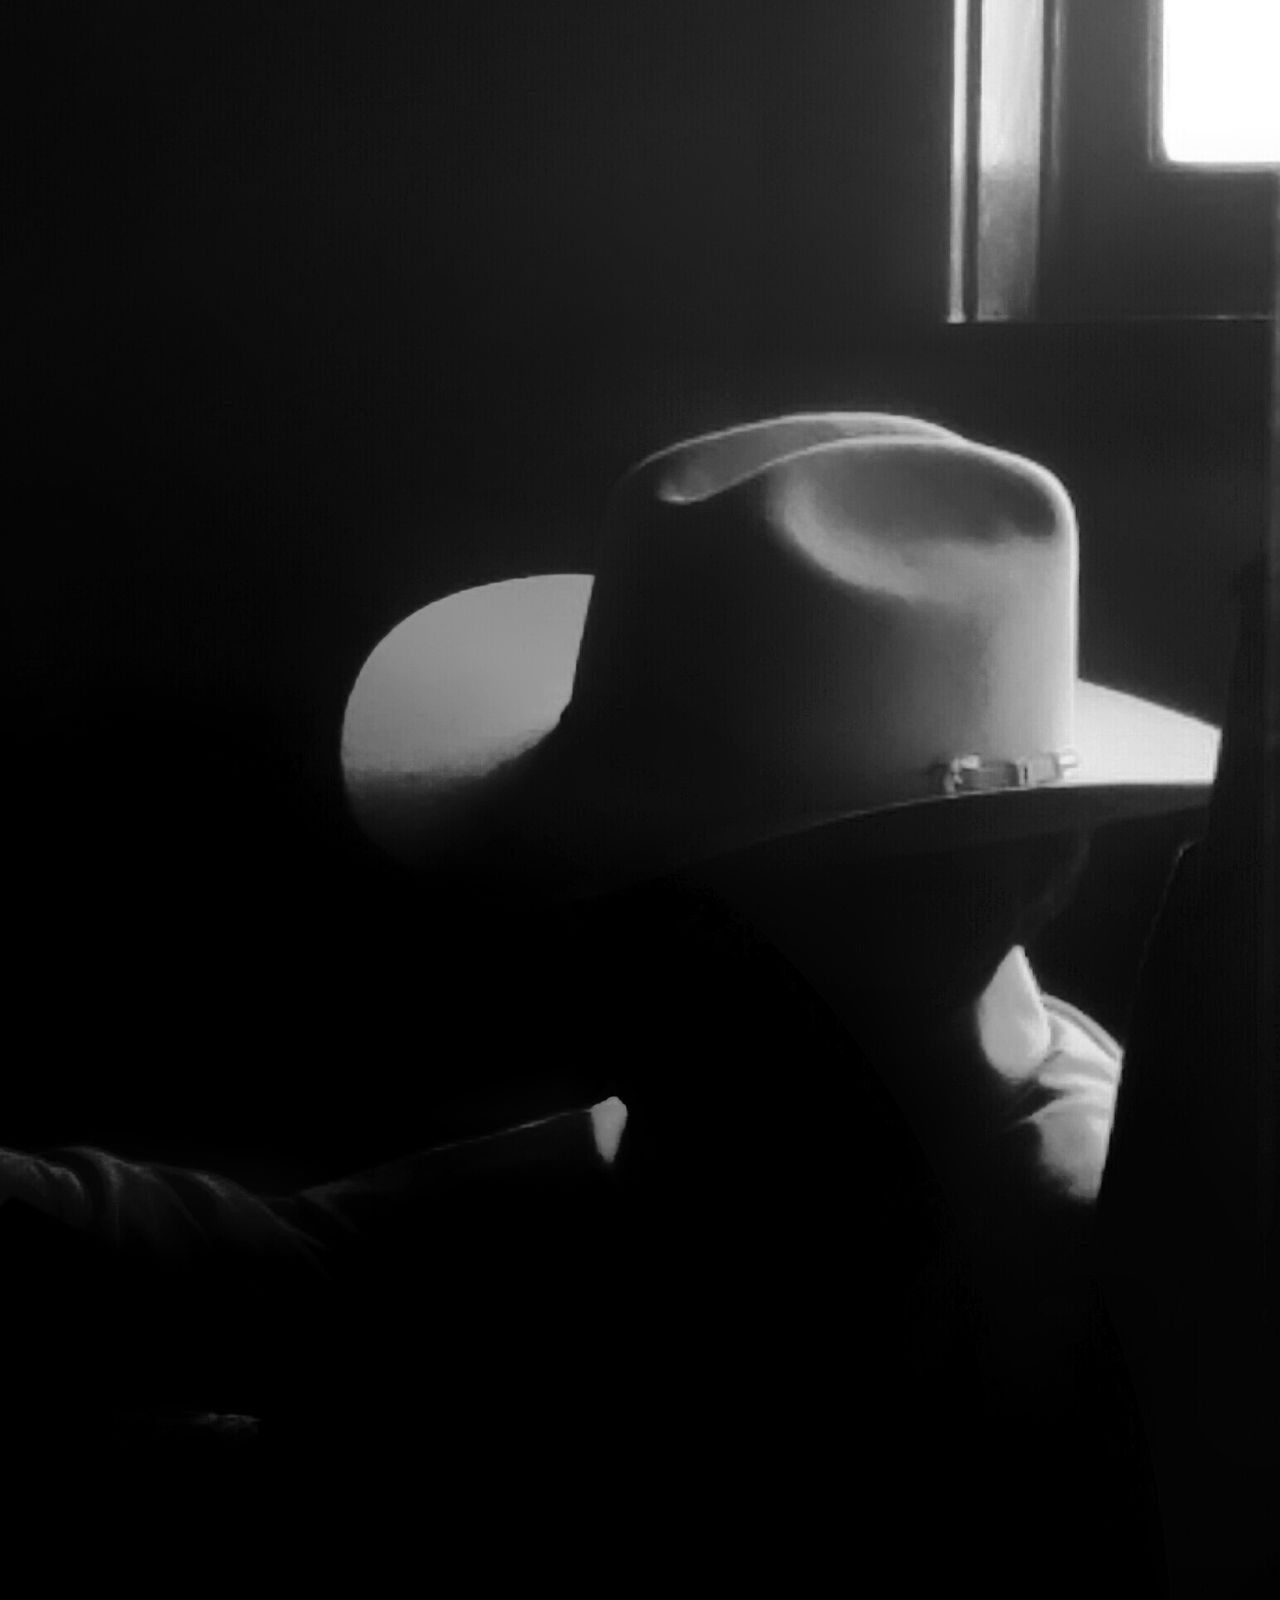 Shadow Indoors  Sunlight Domestic Room Home Interior Black&white Blackandwhite Black And White Collection! Eyeemphotography Black & White Photography This Week On Eyeem Blackandwhite Photography EyeEm Gallery Texas Photographer One Man Only Headwear Headshot Day